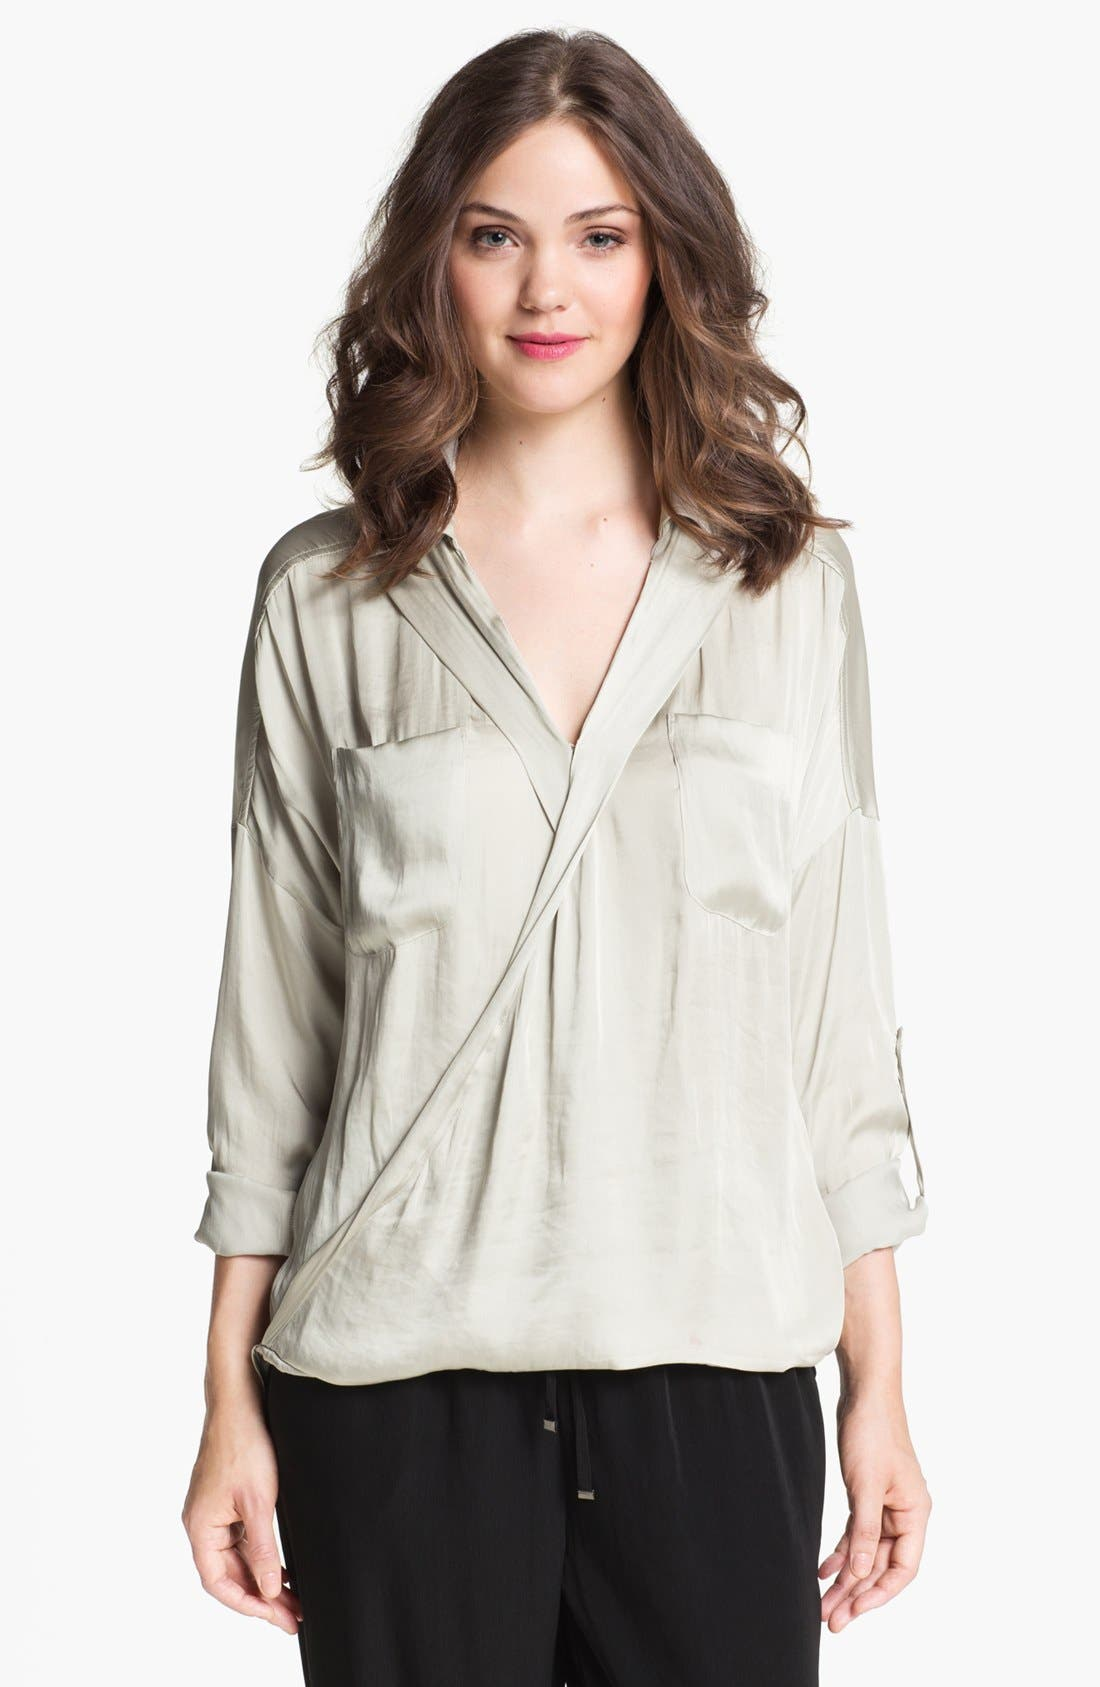 Alternate Image 1 Selected - Kenneth Cole New York 'Gail' Blouse (Online Only)